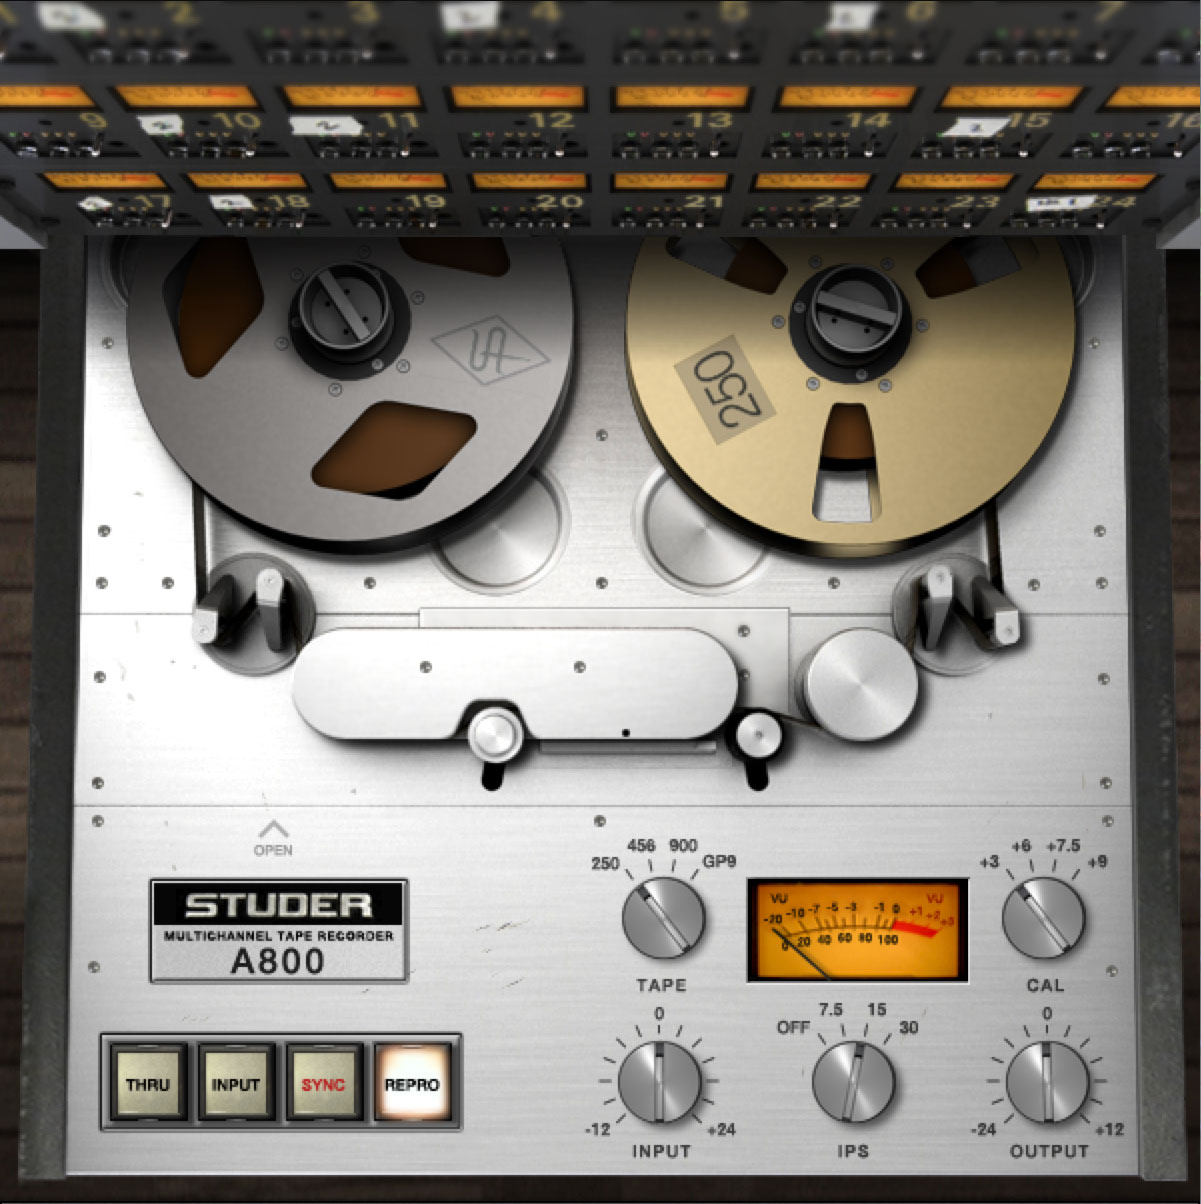 UAD-Studer-A800-Reel-To-Reel-Tape-Machine.jpg